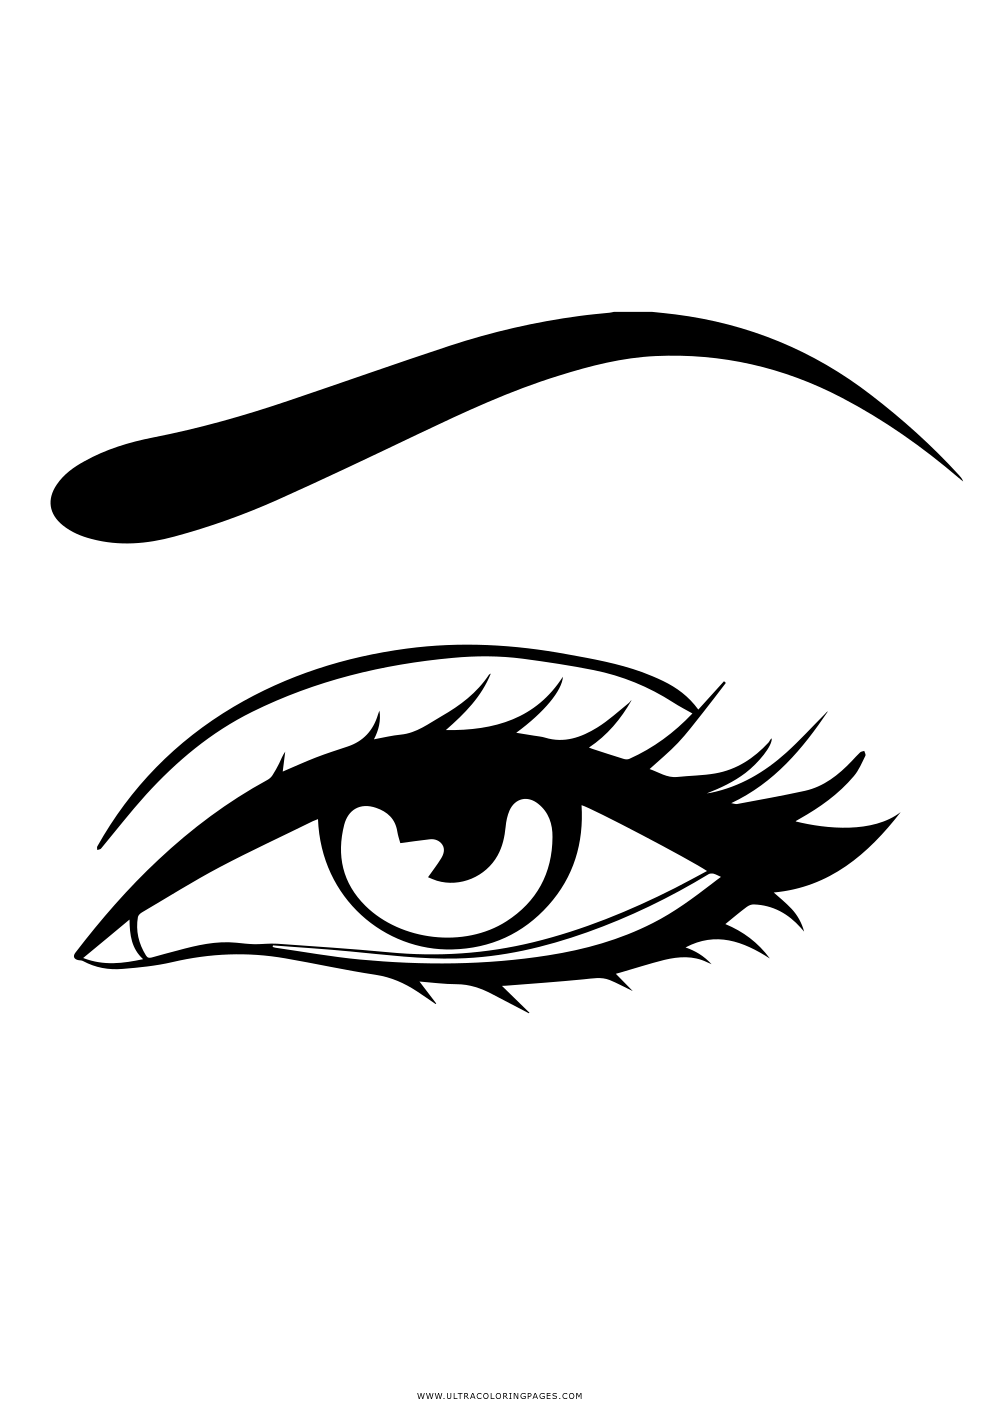 Eye Coloring Page : coloring, Coloring, Ultra, Pages